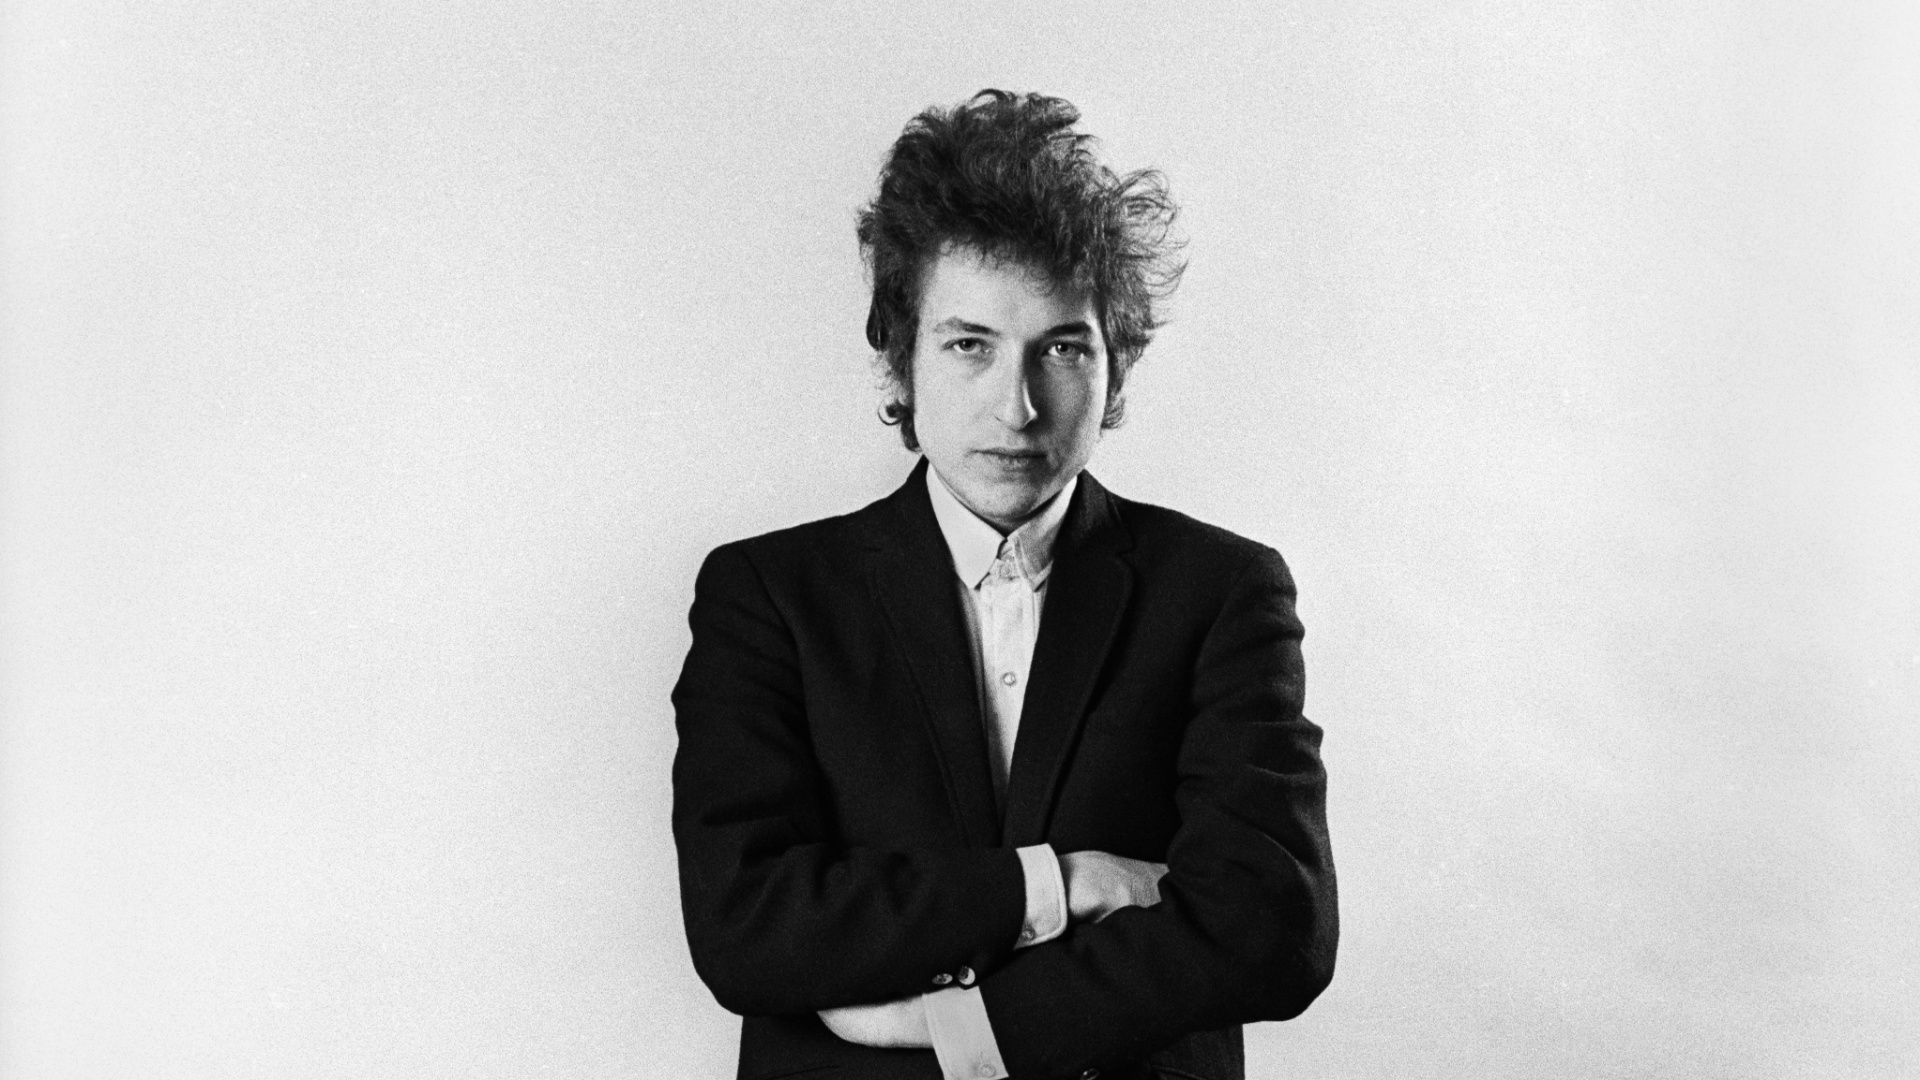 a-exposicao-photographs-of-bob-dylan-reune-fotos-feitas-por-daniel-kramer-durante-turne-do-bardo-entre-1964-e-1965-kramer-registra-a-metamorfose-do-artista-de-trovador-folk-a-icone-do-rock-n-roll-1353032415588_1920x1080.jpg